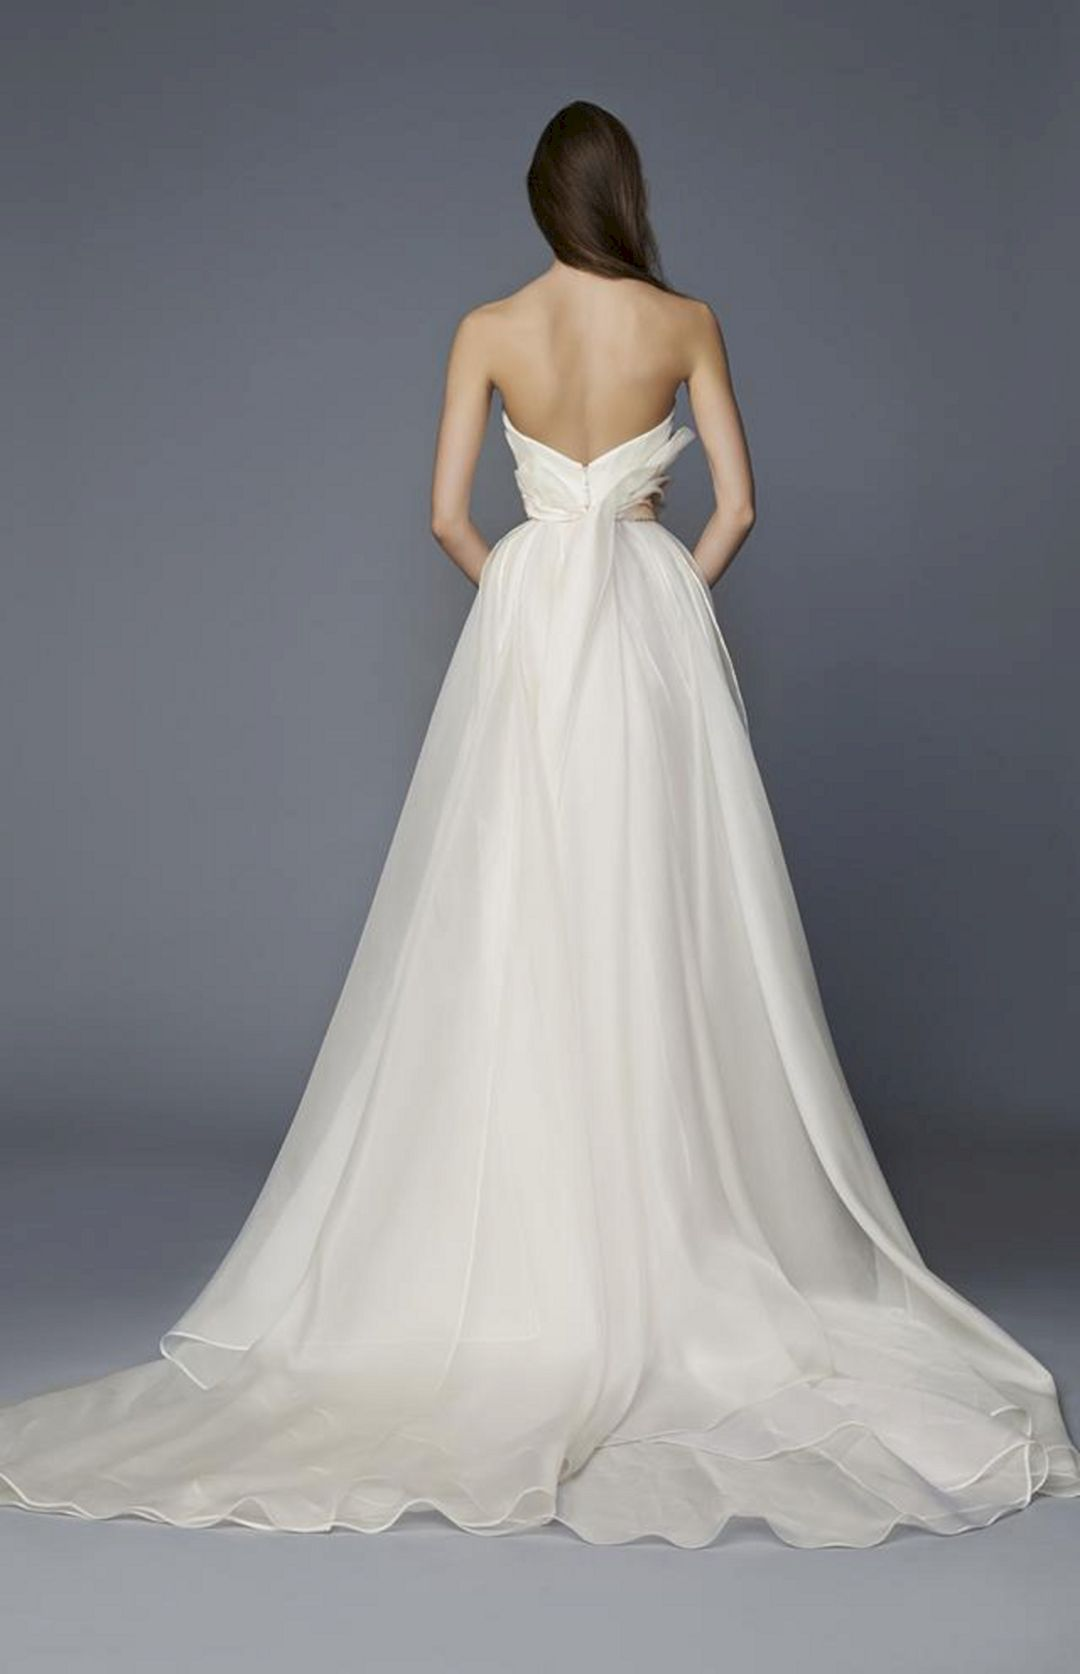 30 beautiful wedding dress collections designed by